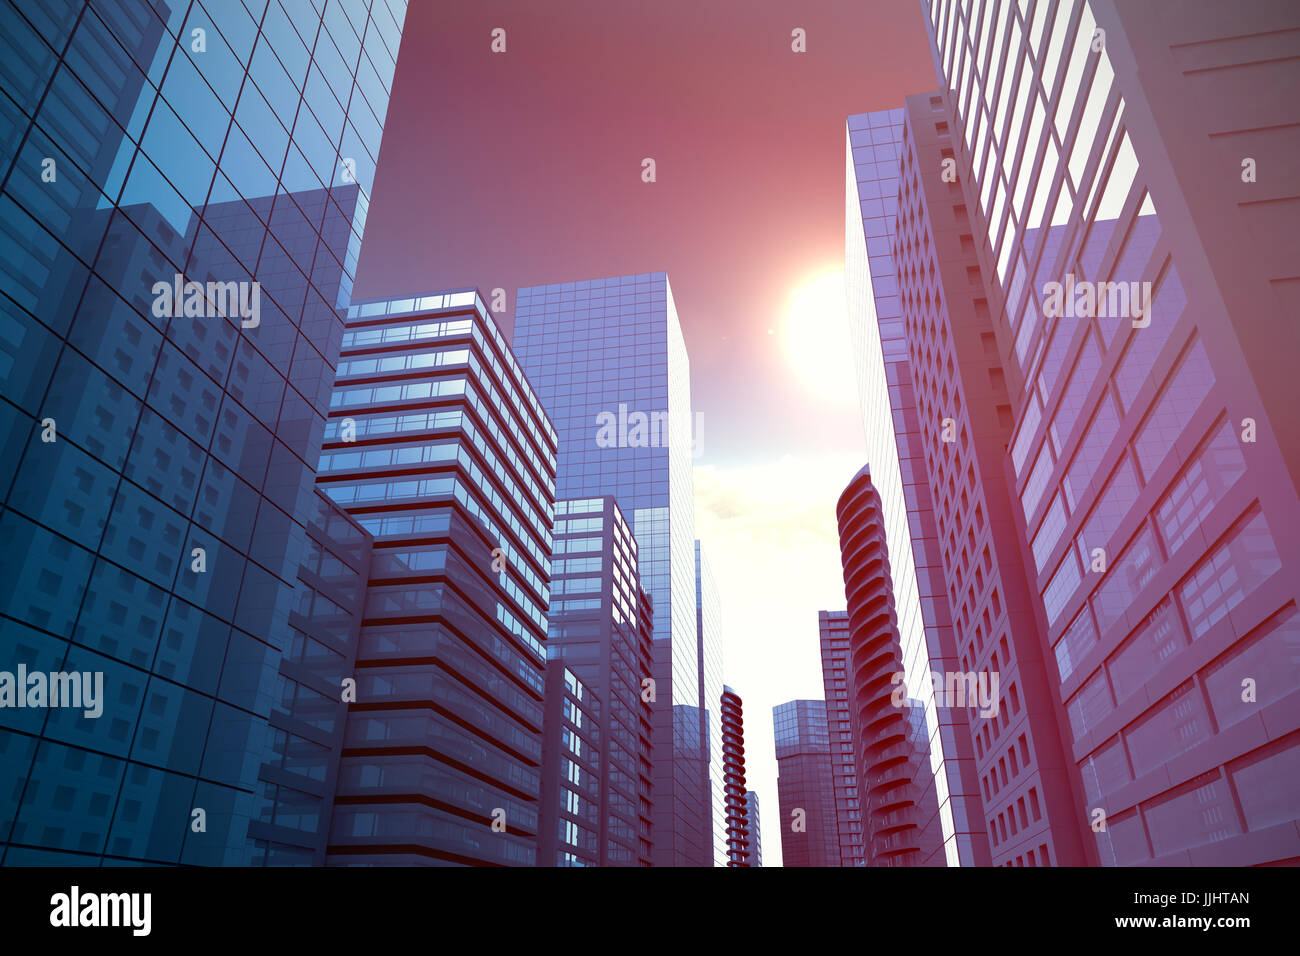 Three dimensional image of modern city against scenic view of bright sun over white cloudscape - Stock Image